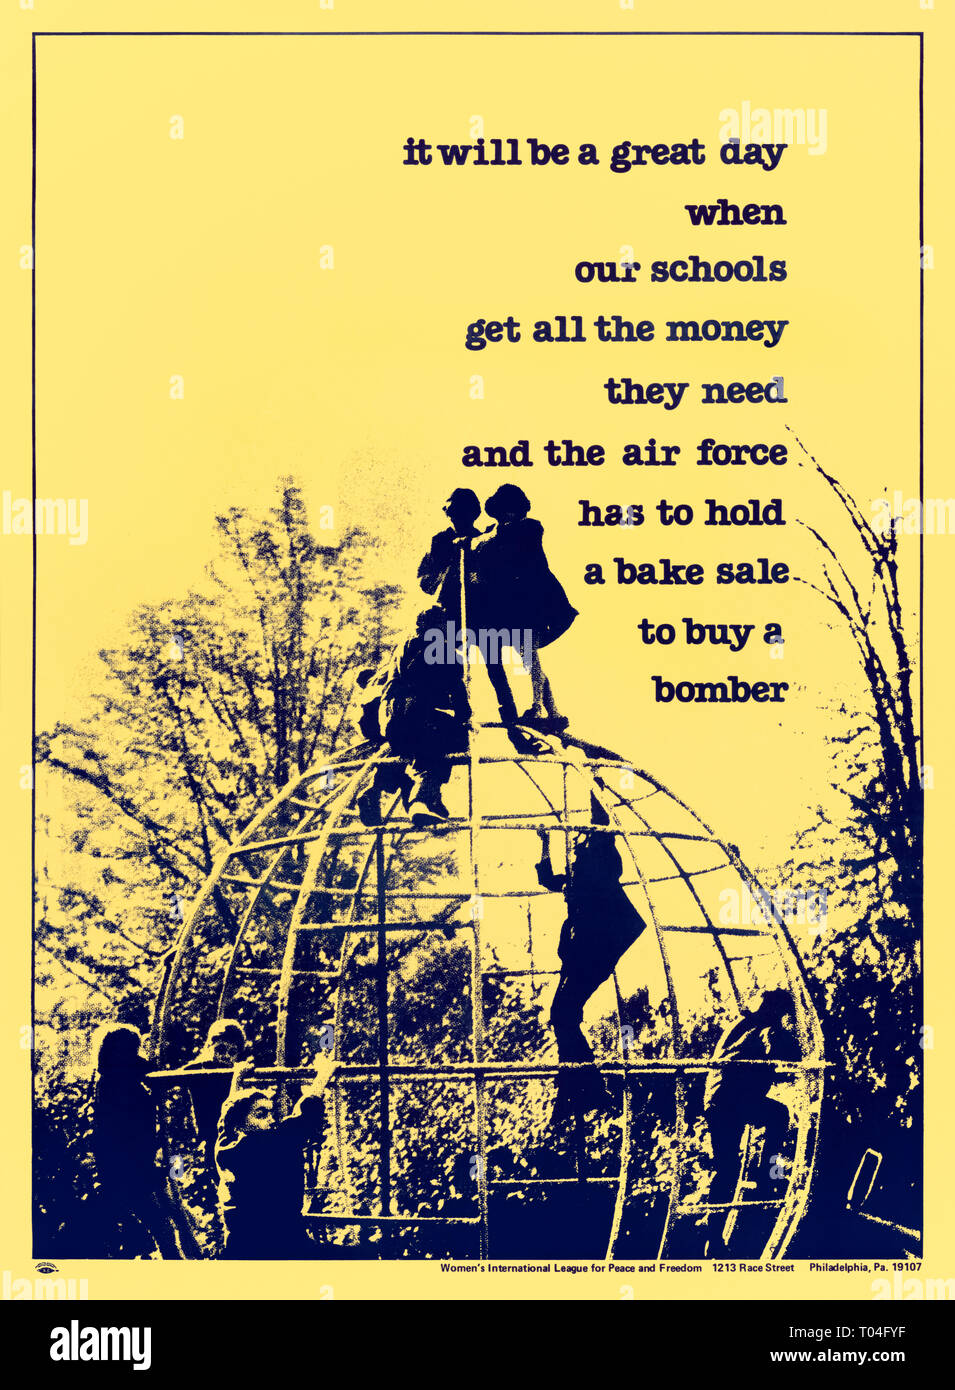 """It will be a great day when our schools get all the money they need and the air force has to hold a bake sale to buy a bomber"" 1979 by the  Women's International League for Peace and Freedom (WILPF) poster. See more information below. - Stock Image"